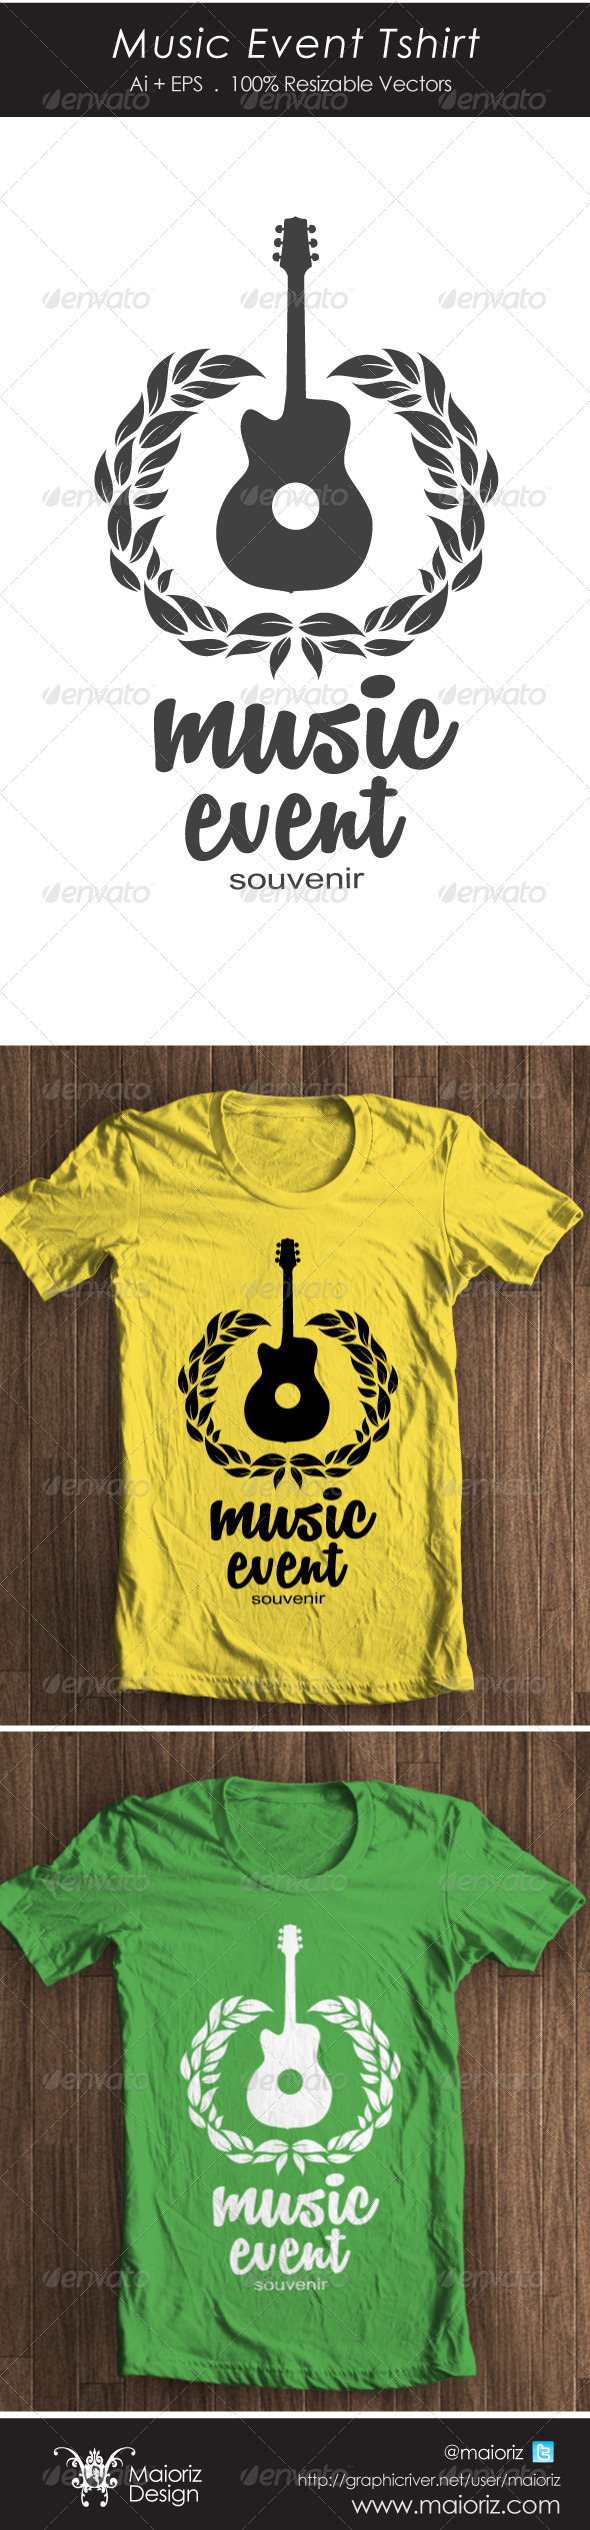 Music Event Tshirt - Events T-Shirts